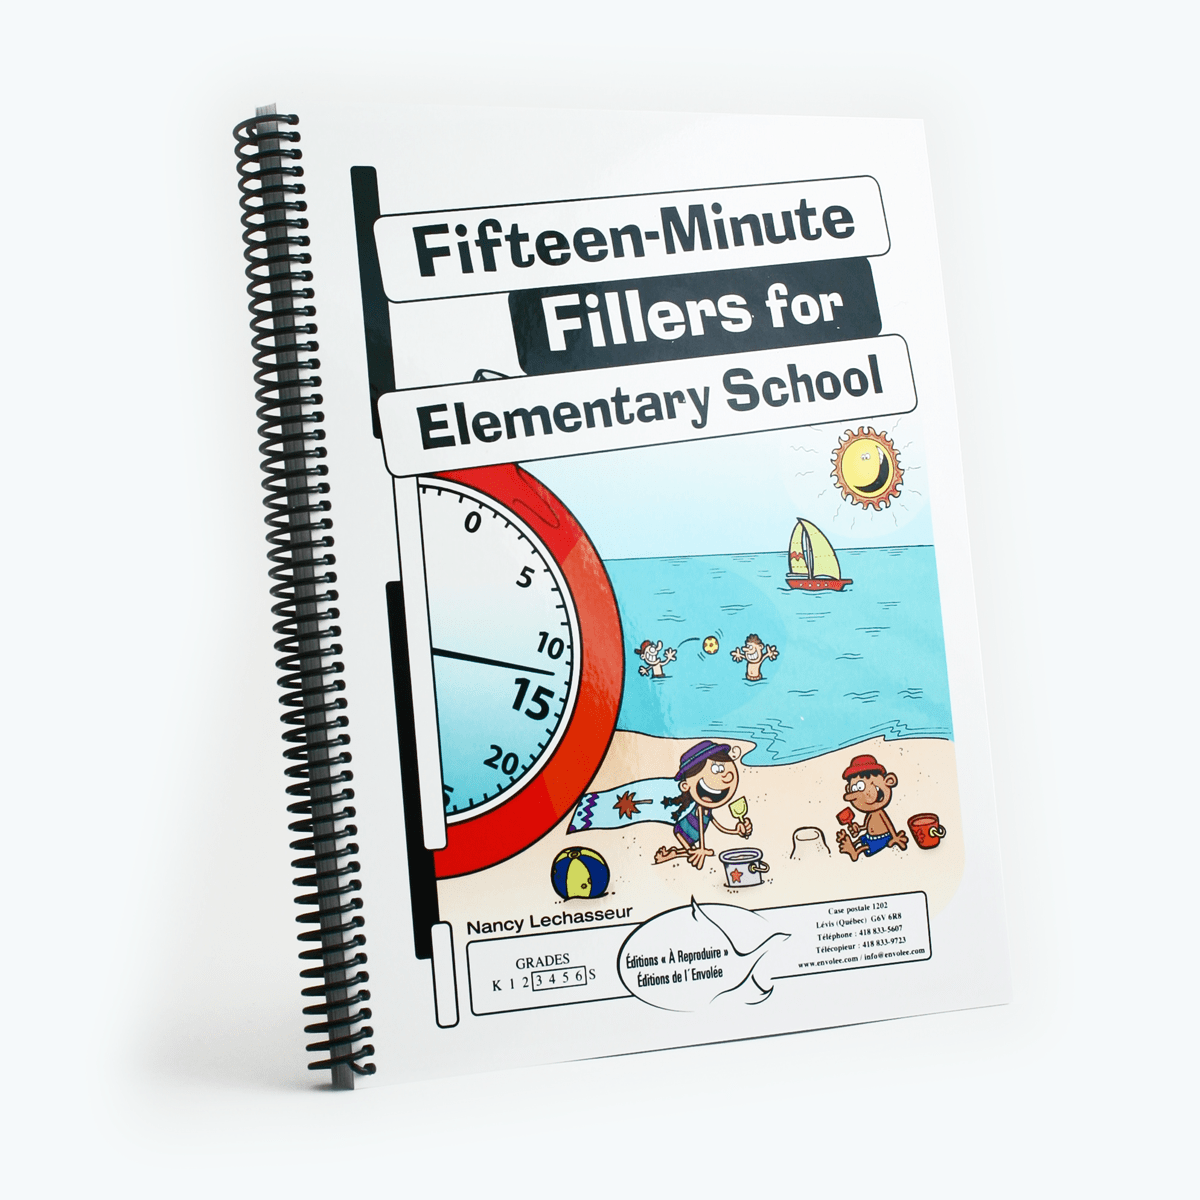 Fifteen-Minute Fillers for Elementary School